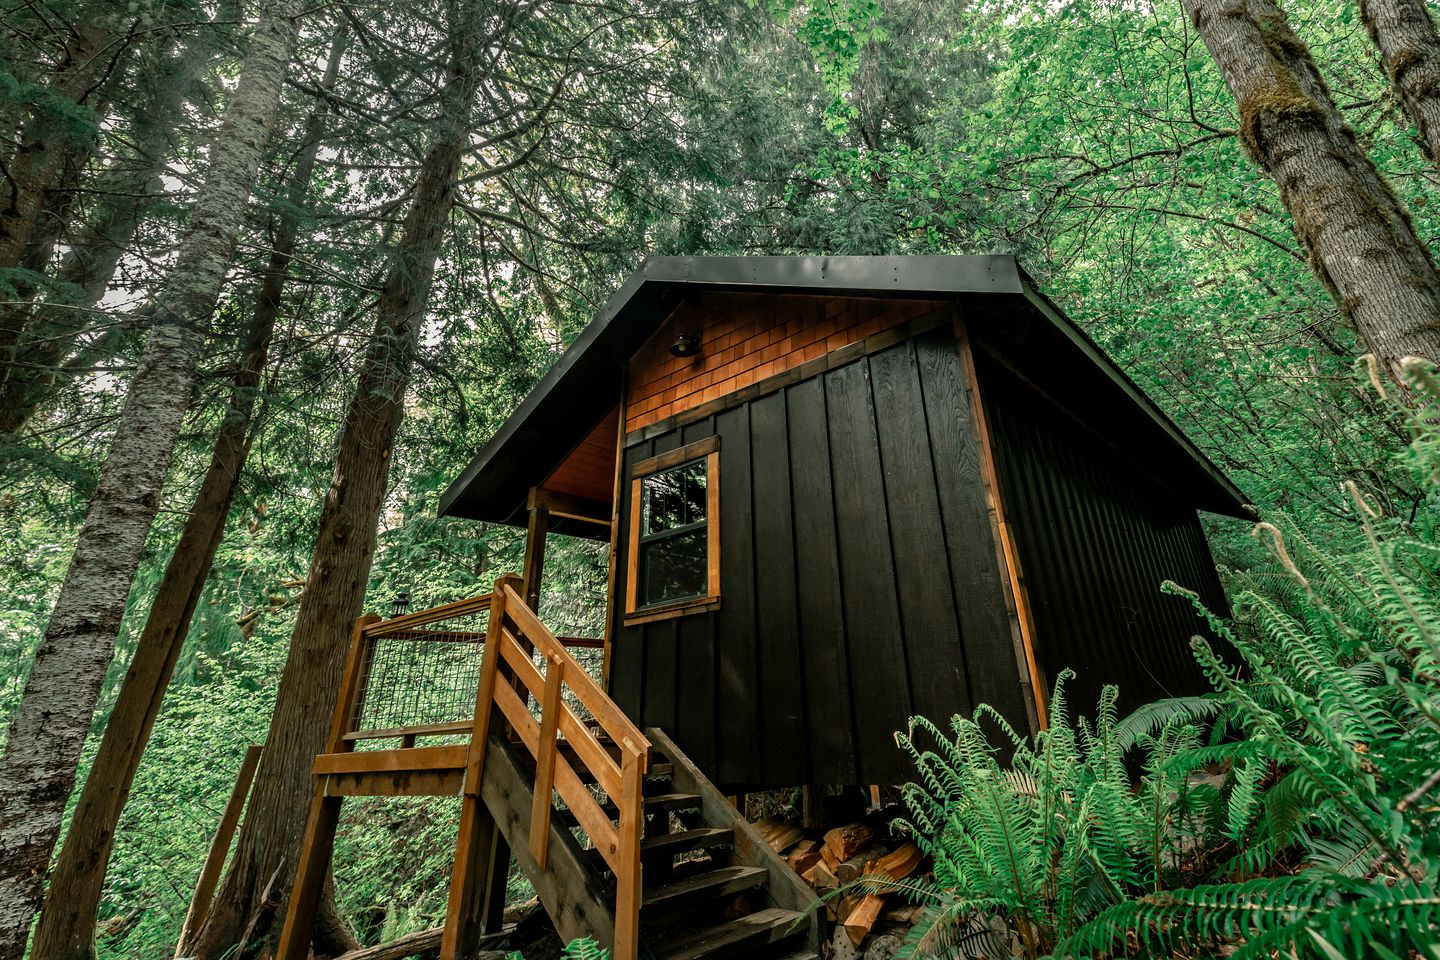 The black siding of the cabin